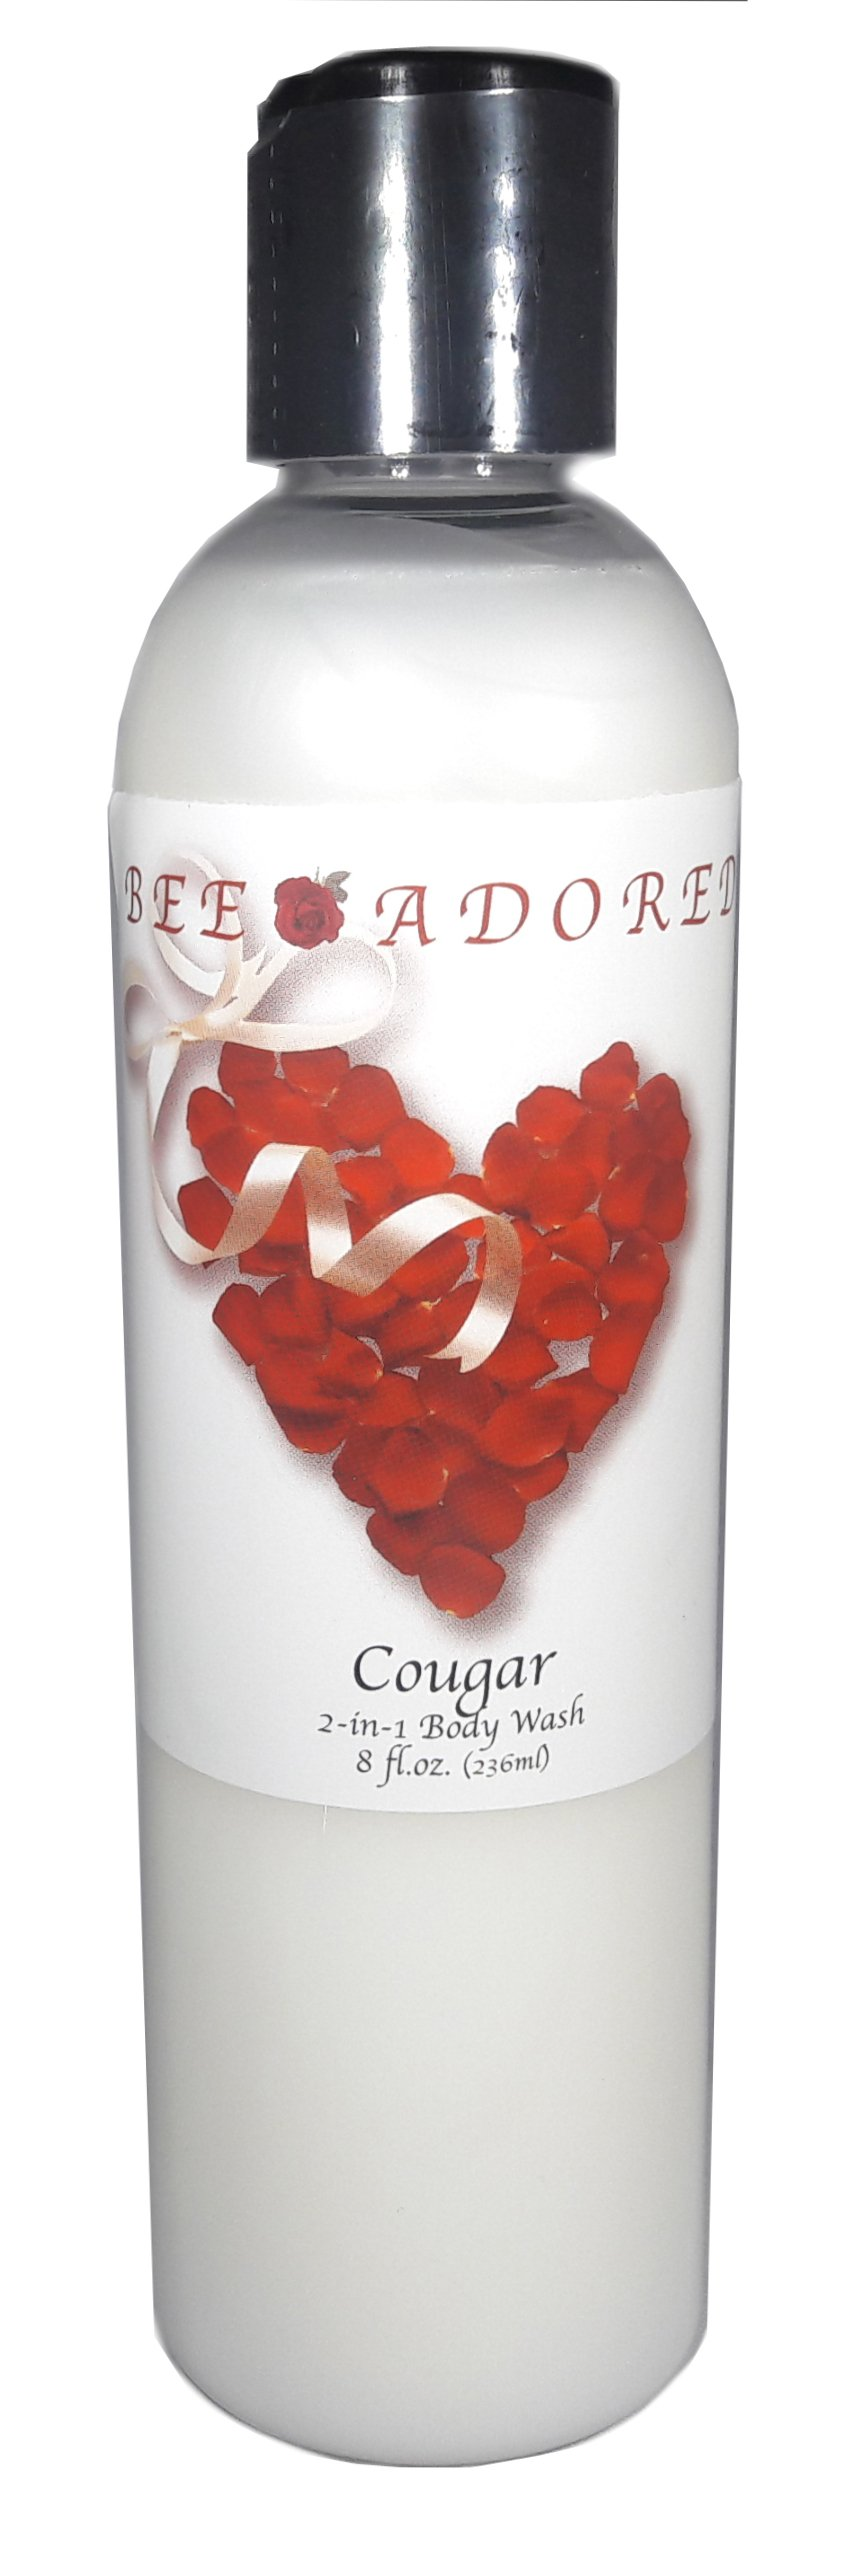 Bee Adored Body Wash, Cougar, 8 Fluid Ounce